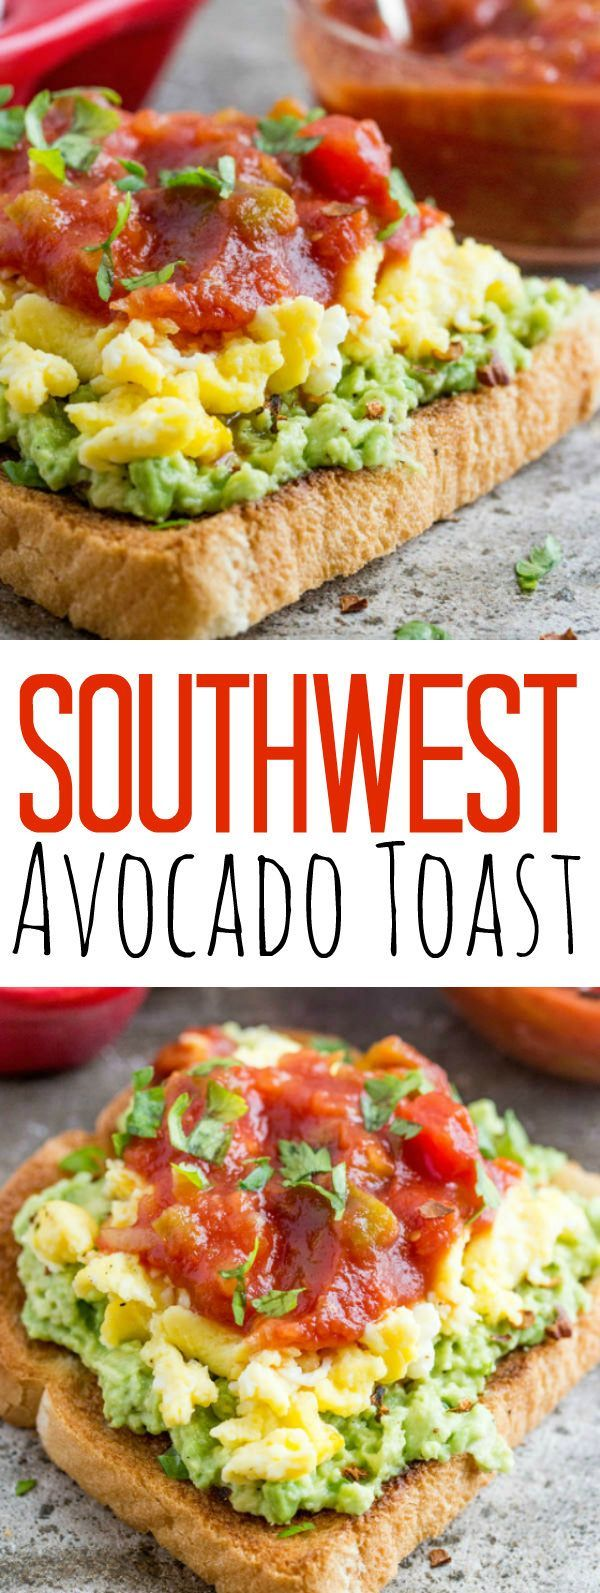 Southwest avocado toast recipe avocado toast salsa and lunches food perfect for breakfast lunch or dinner forumfinder Choice Image